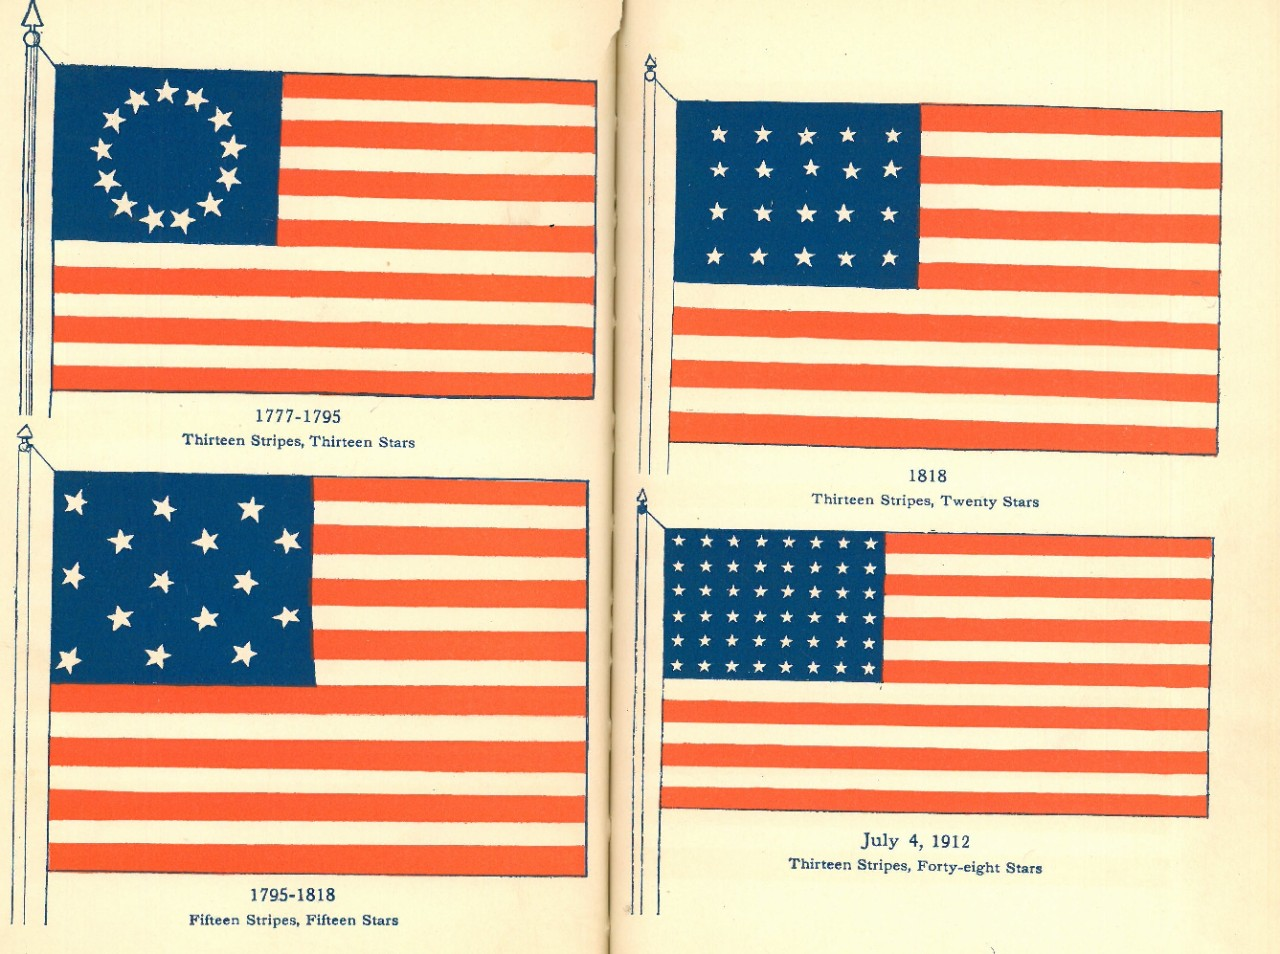 Illustration of early American Flags 1777 - 1912